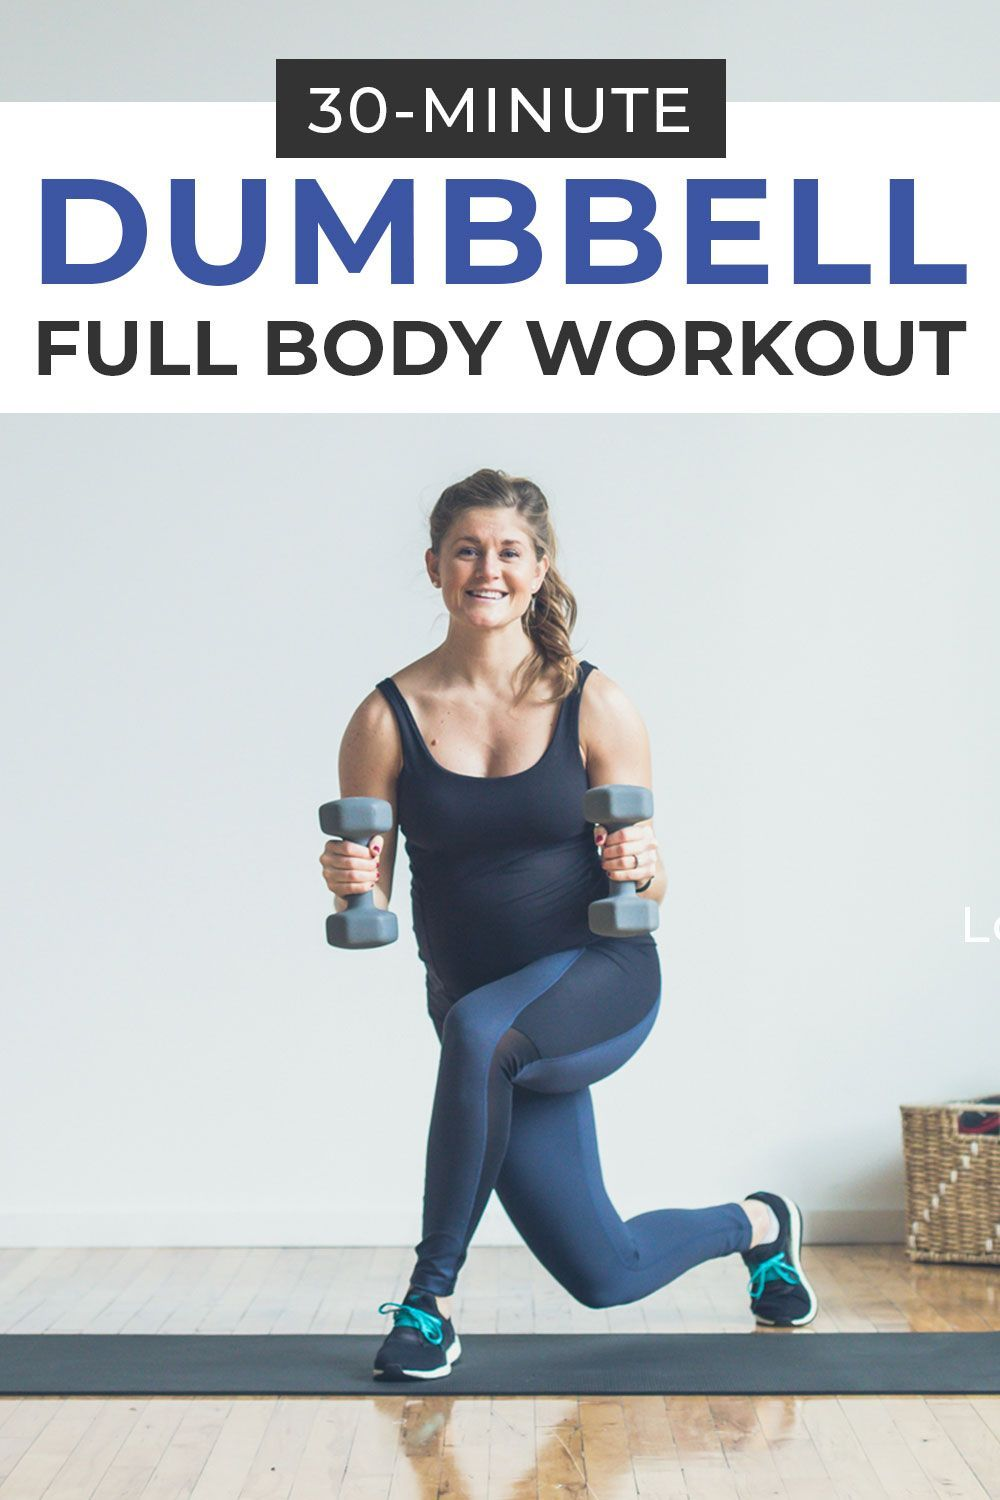 Strength train at home with this 30-minute circuit workout with dumbbells! This full body dumbbell w...